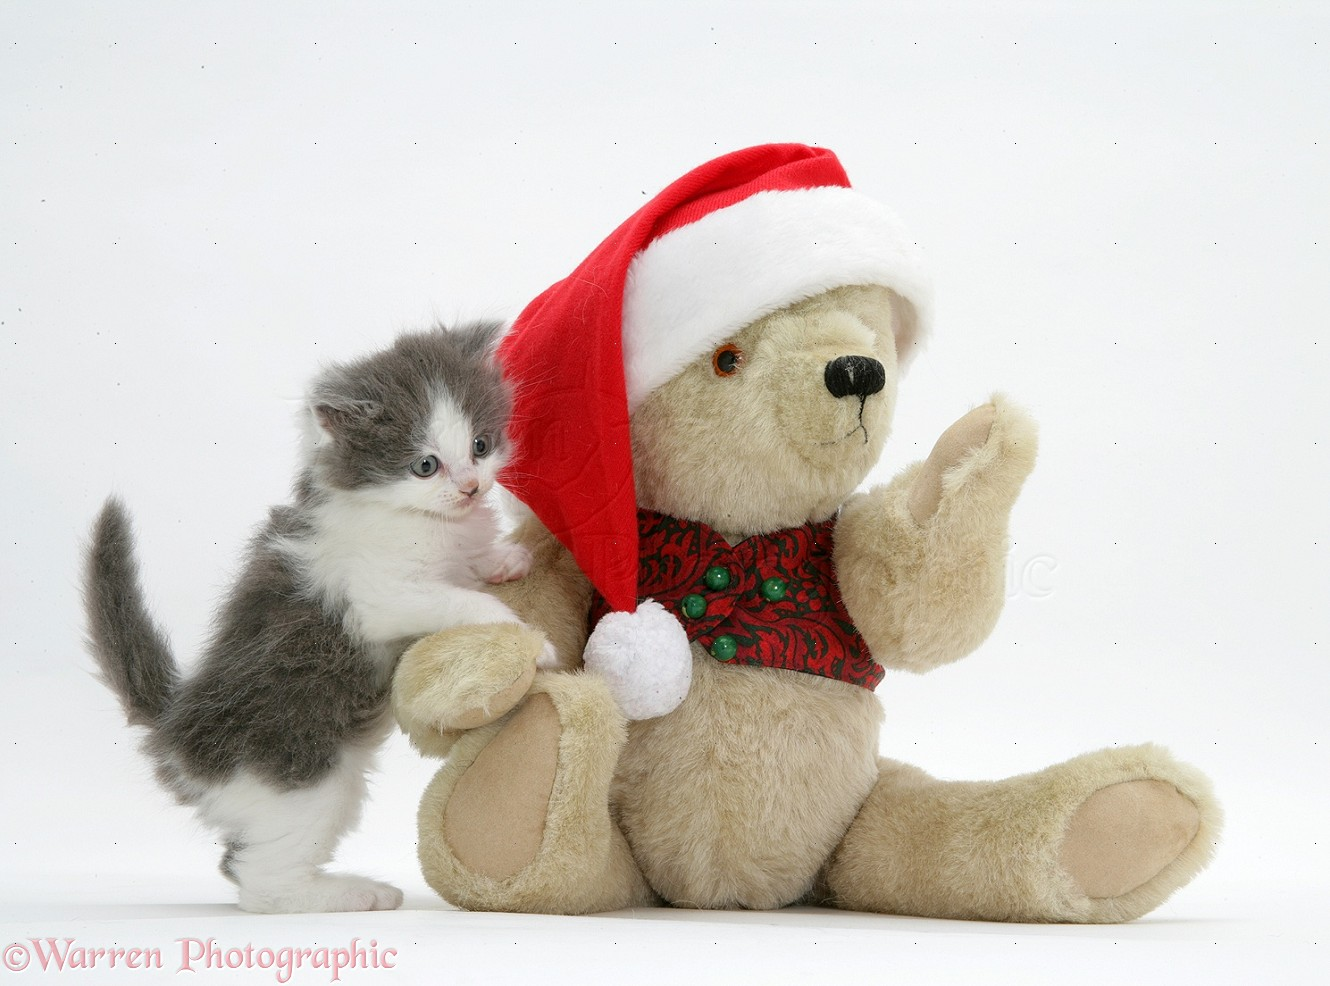 White Teddy Bears Pictures Kitten and teddy bearWhite Teddy Bears Pictures